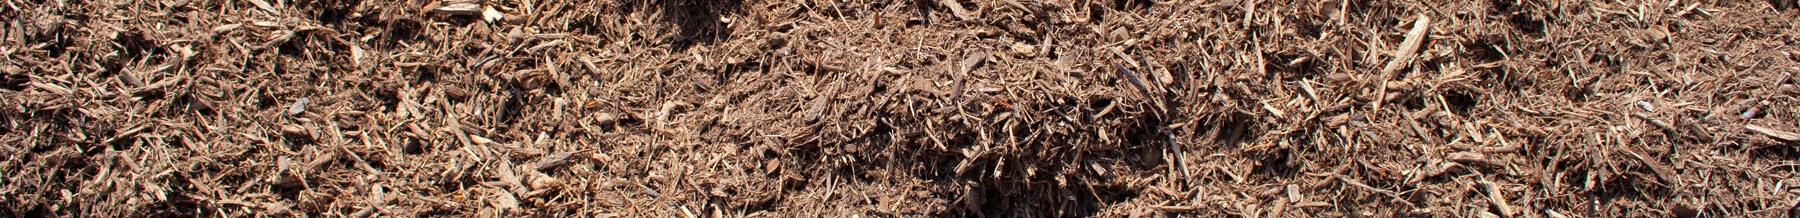 close up wide shot of kiddie cushion mulch